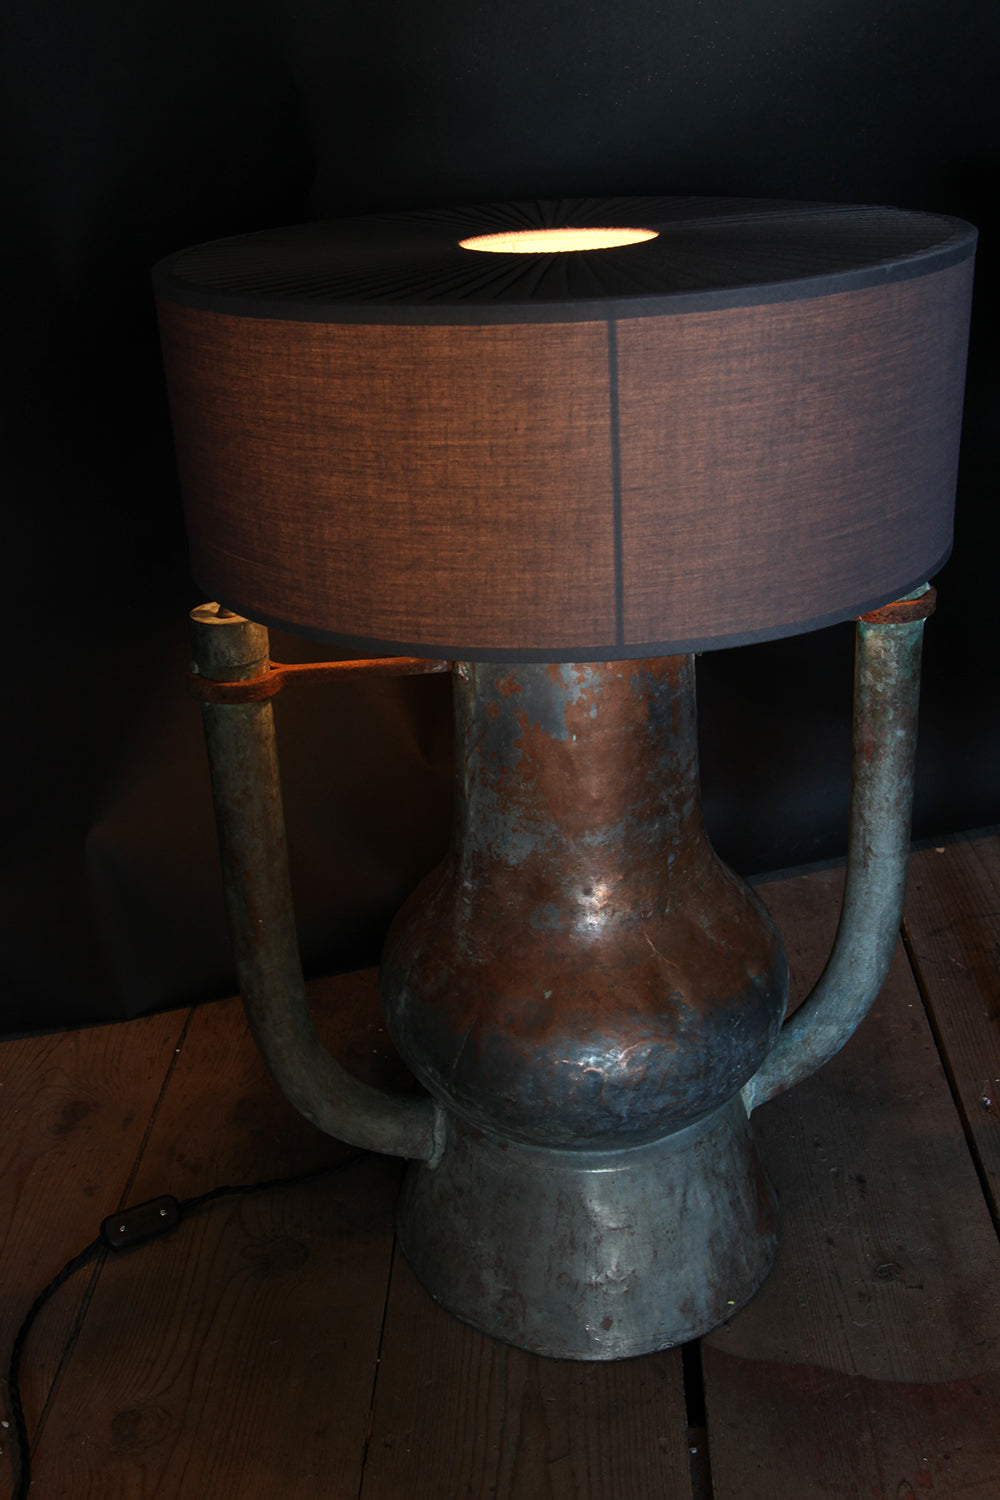 The Cognac lamp